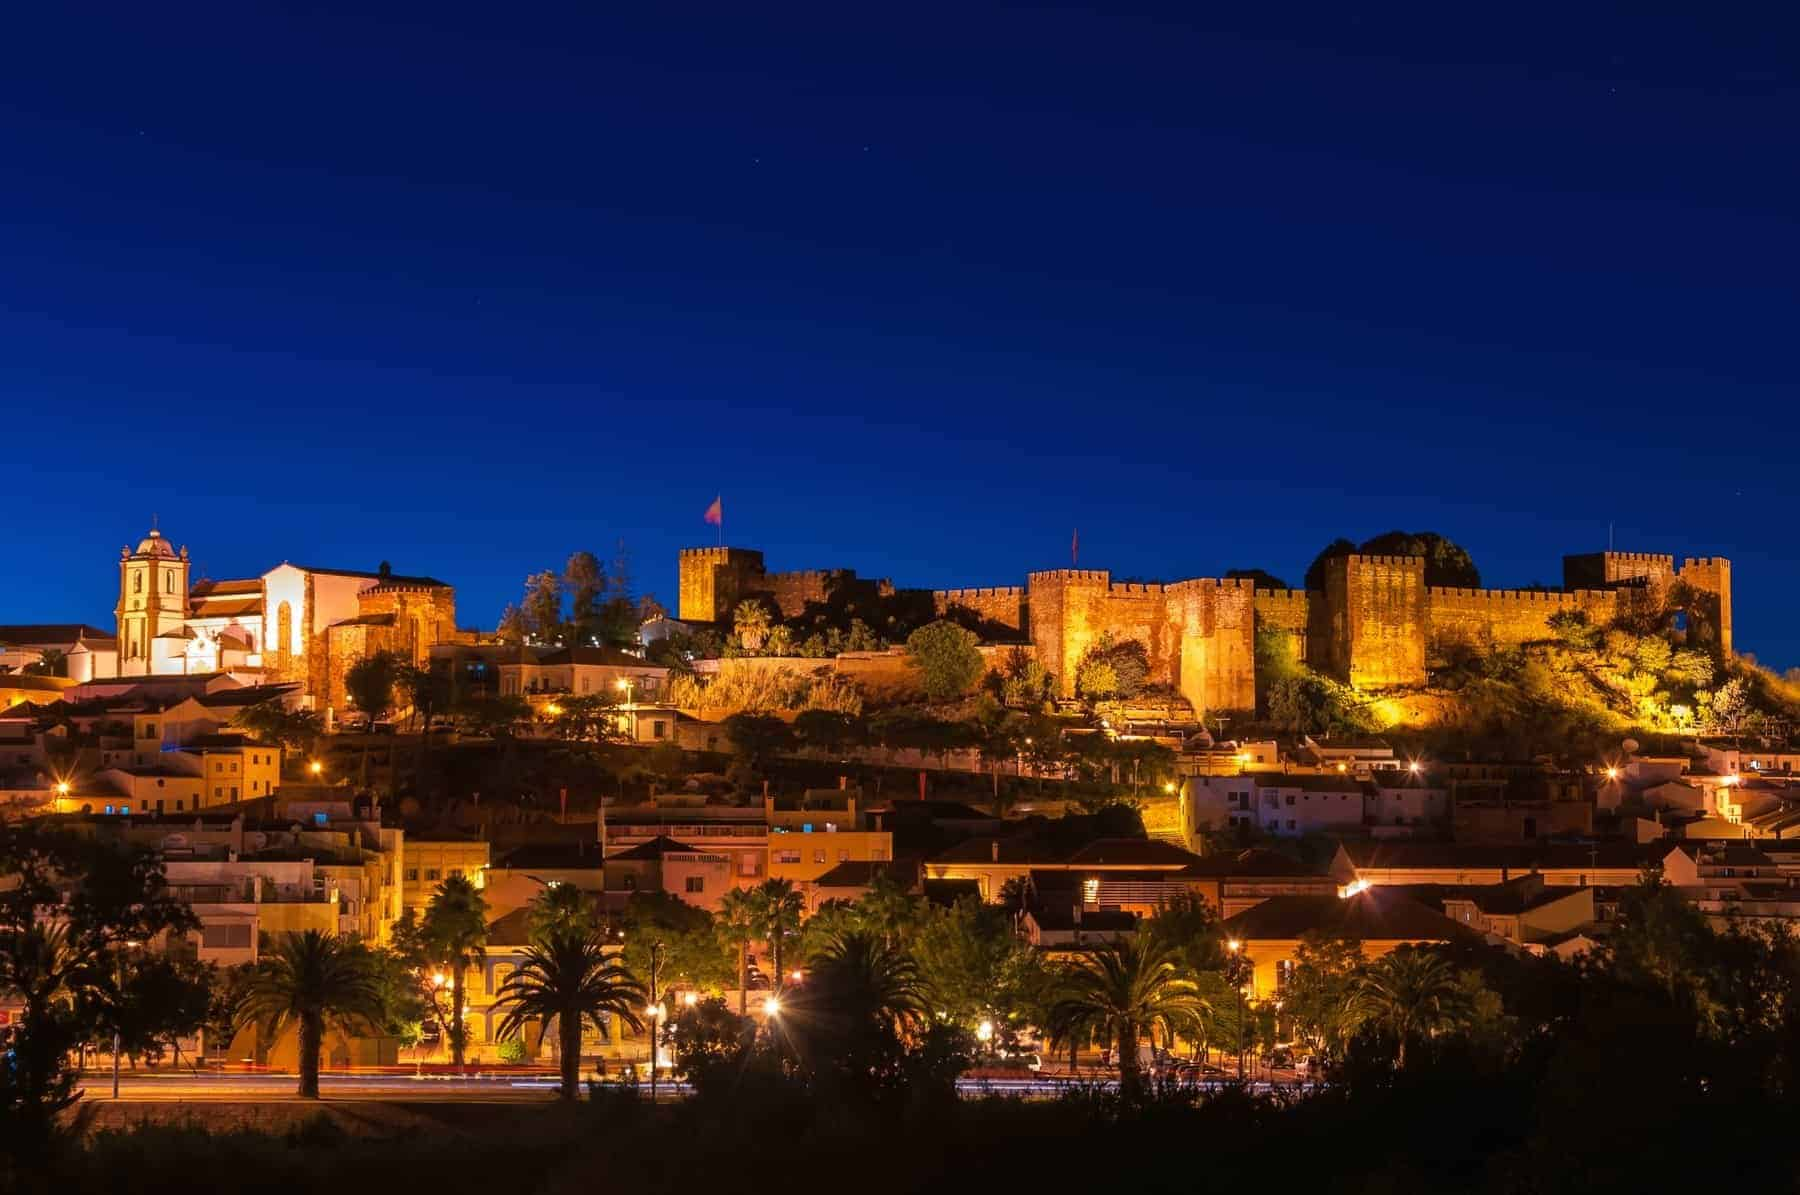 Panoramic view of Silves by night, Algarve, Portugal